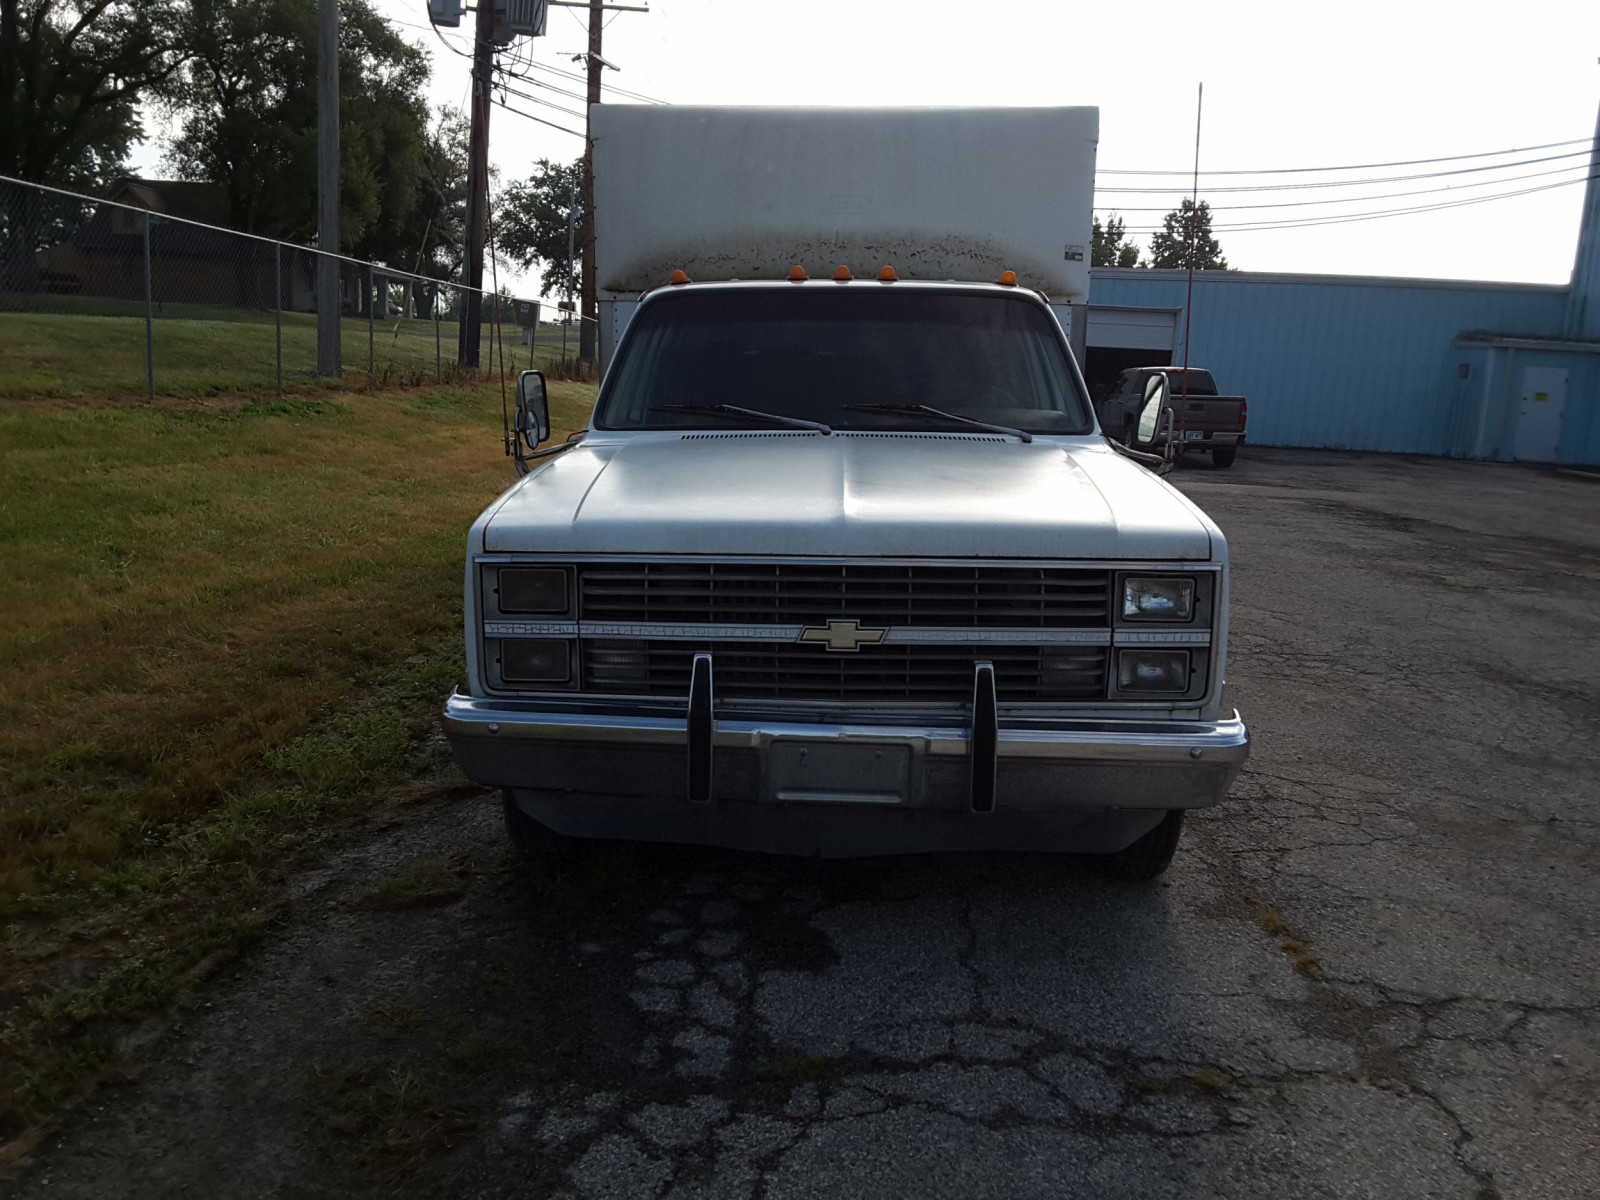 1984 Chevrolet 30 Series dually Car Hauler - Image 2